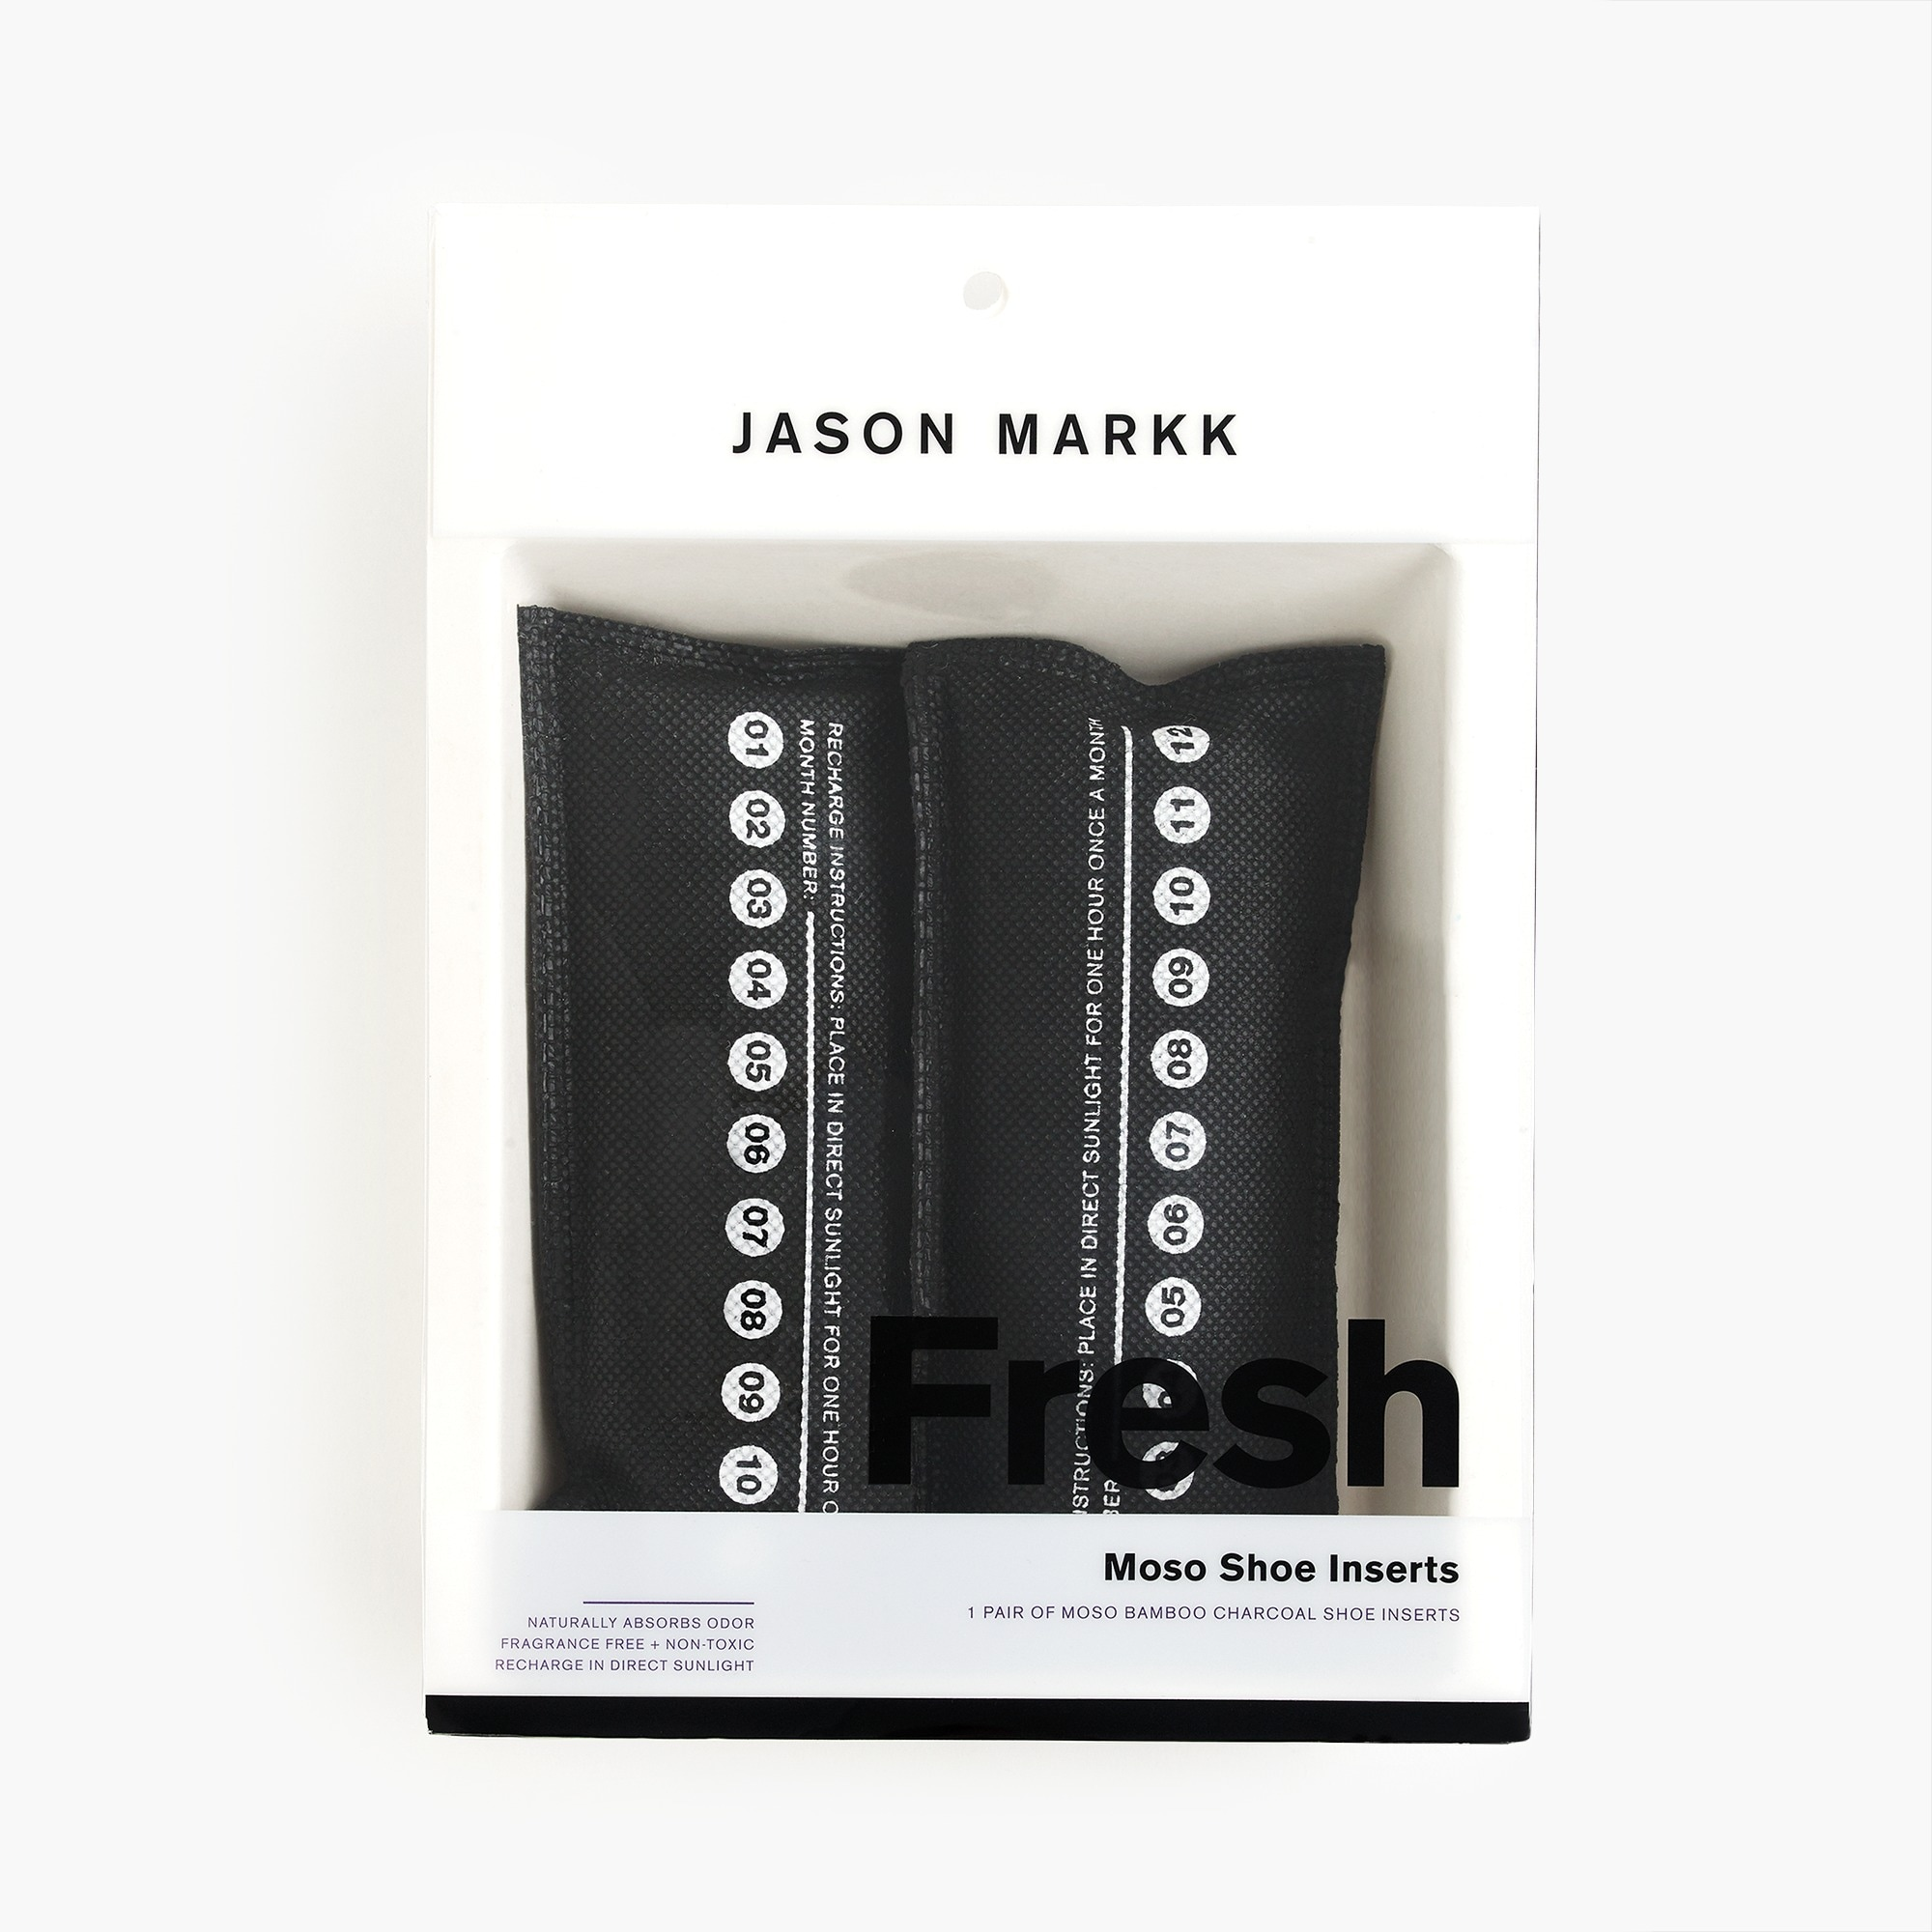 Jason Markk™ moso bamboo charcoal shoe fresheners men accessories c